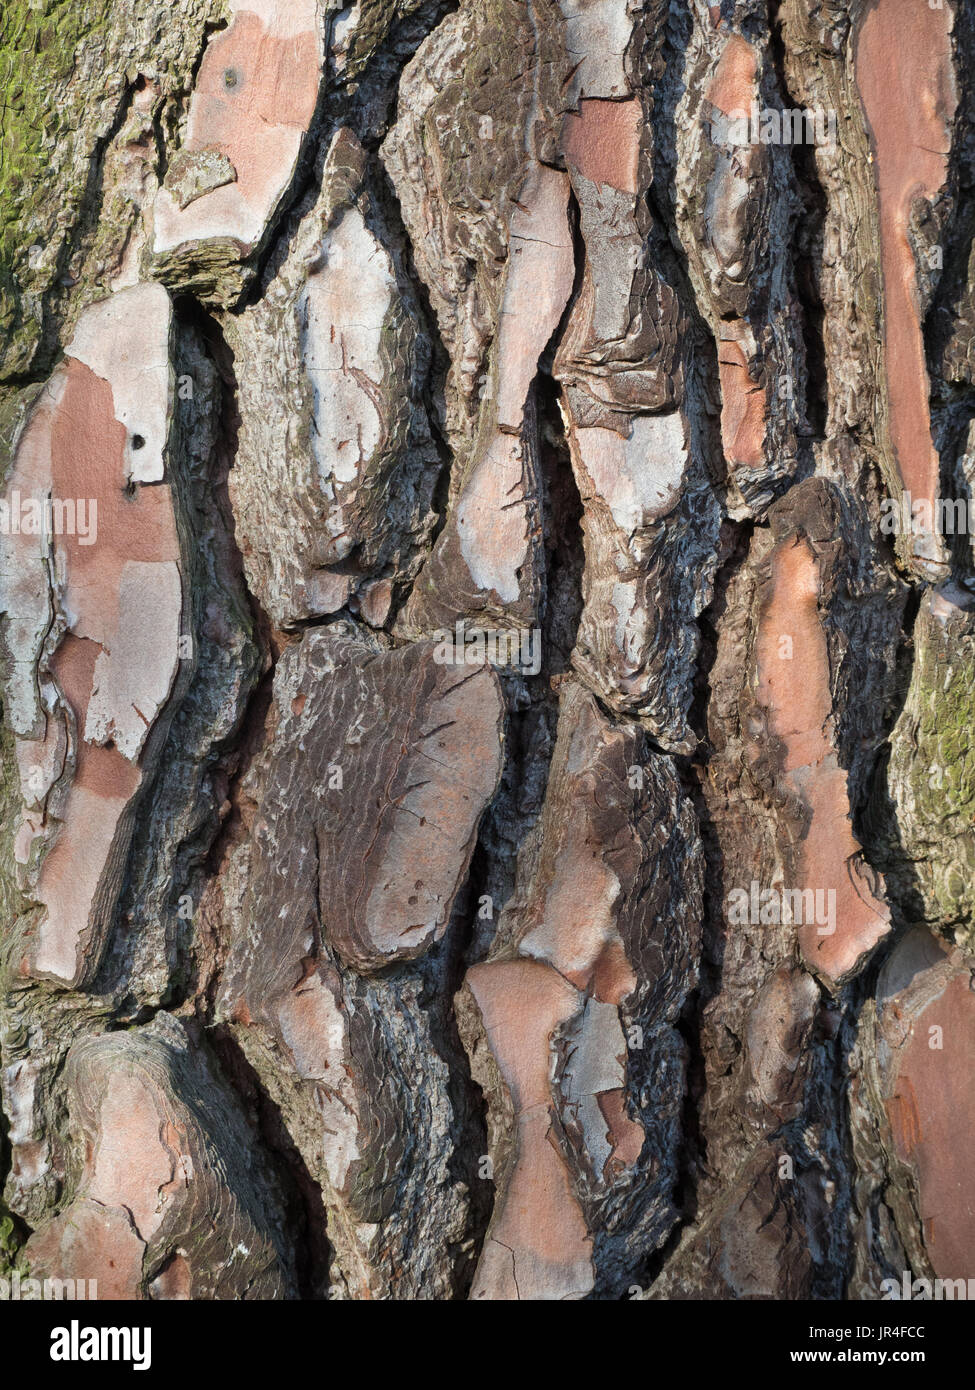 Close up of the deeply fissure bark of Pinus pinaster - Stock Image